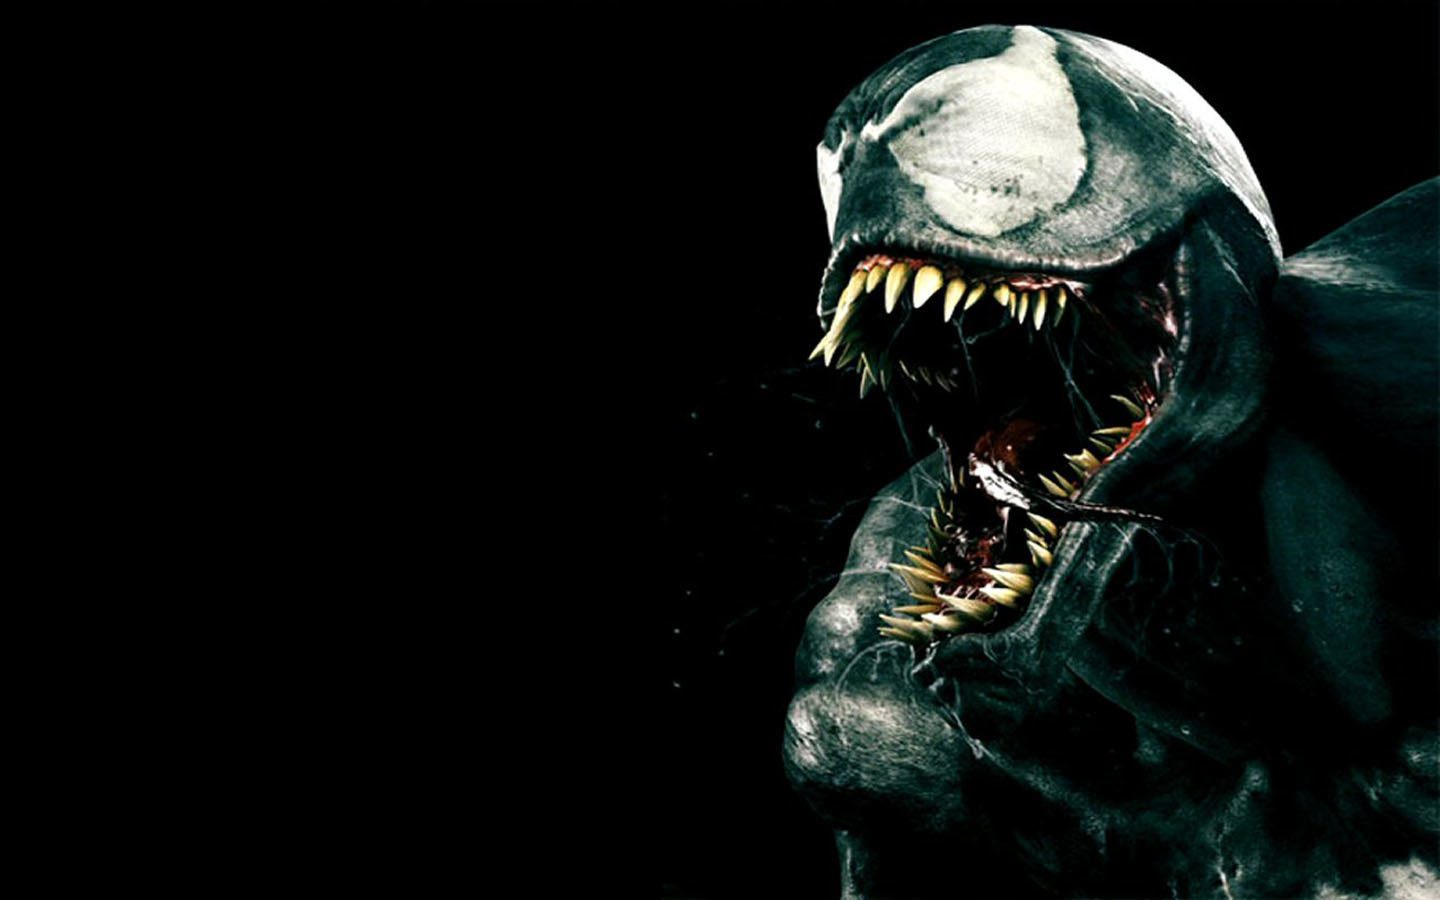 Download hd 1440x900 Venom computer background ID:25575 for free